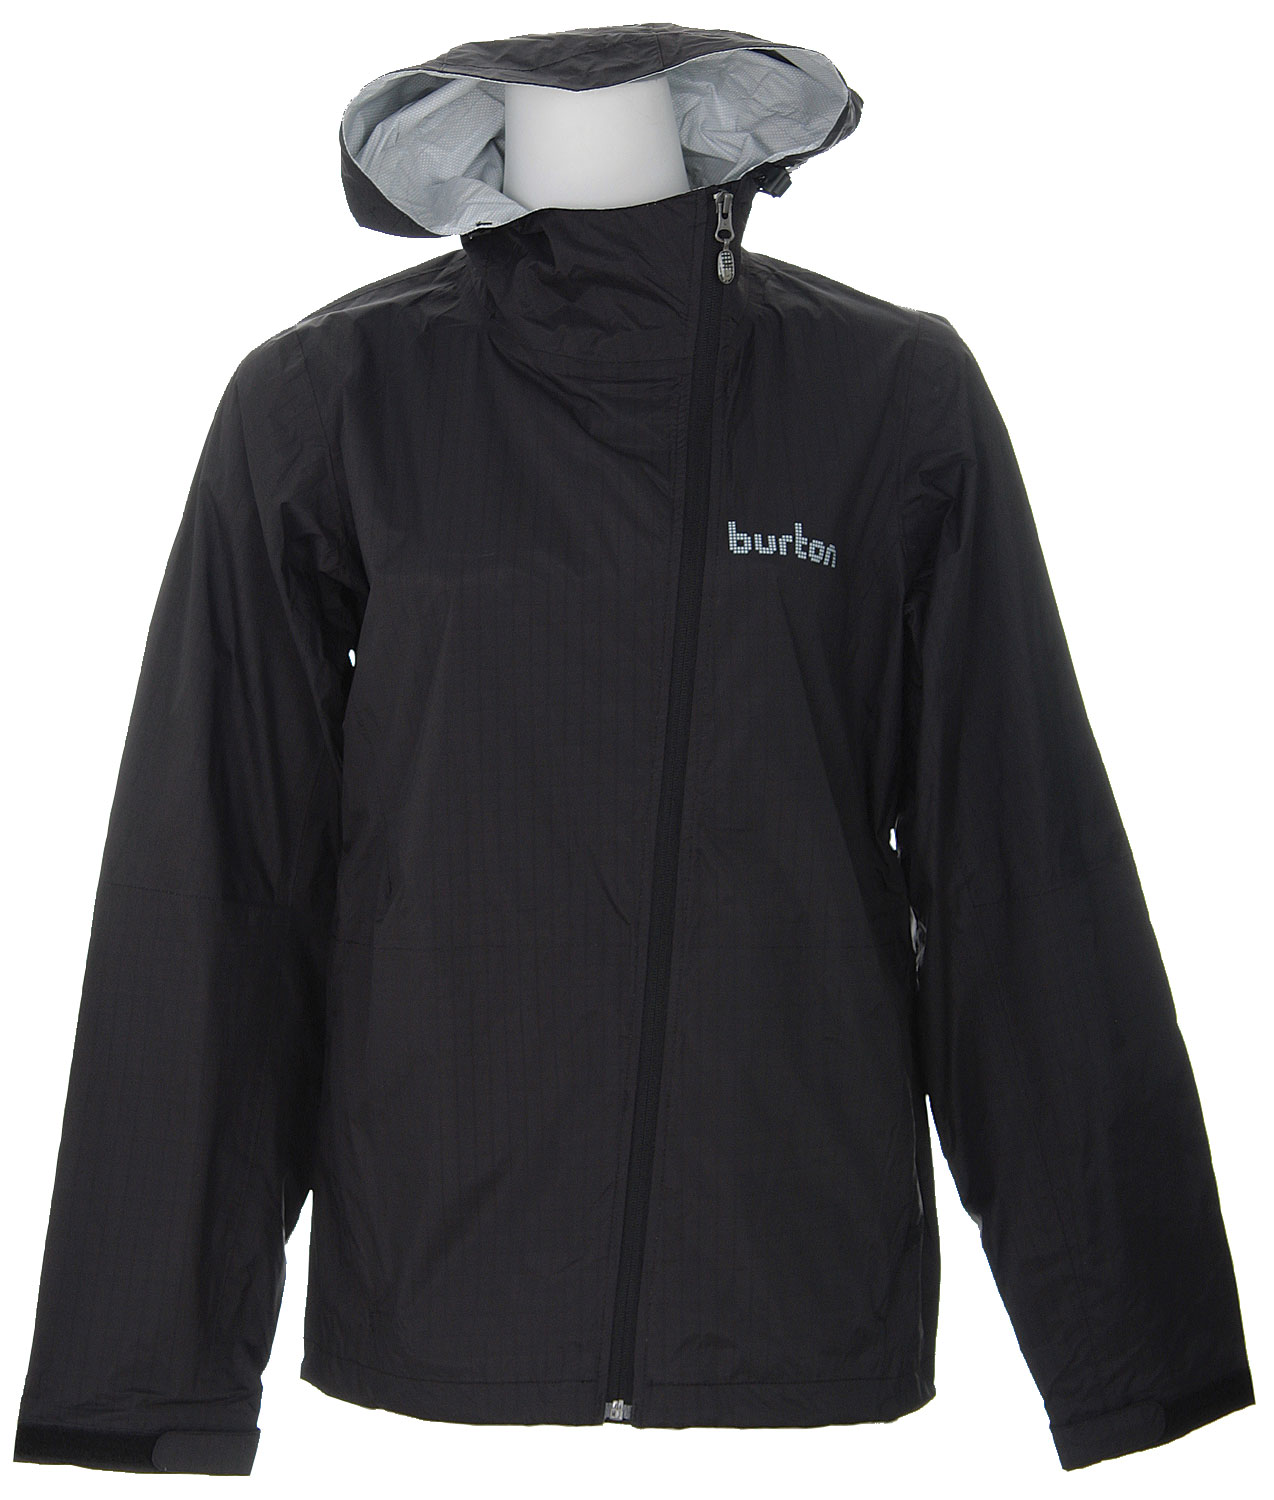 Snowboard The Burton 2.5L Jacket for women offers uncomplicated style and admirable workmanship, from the board sport industry trailblazer. Designed for street wear, the 2.5L jacket is warm enough for the slopes. Rated 5K for breathable, water-resilient performance, it features zippered arm pit vents and fixed hood in a laminated shell boasting Micro Grid Blocker technology. Emblazoned with the respected Burton name in grid pattern across the chest, this understated outerwear for women is already an instant classic.Key Features of the Burton 2.5L Jacket: 5,000 Storm-lite waterproofing 5,000 Storm-lite breathability 2.5L Laminated Shell Fabric with Micro Grid Blocker Pit zips Fully taped seams Full time contour hood - $69.95